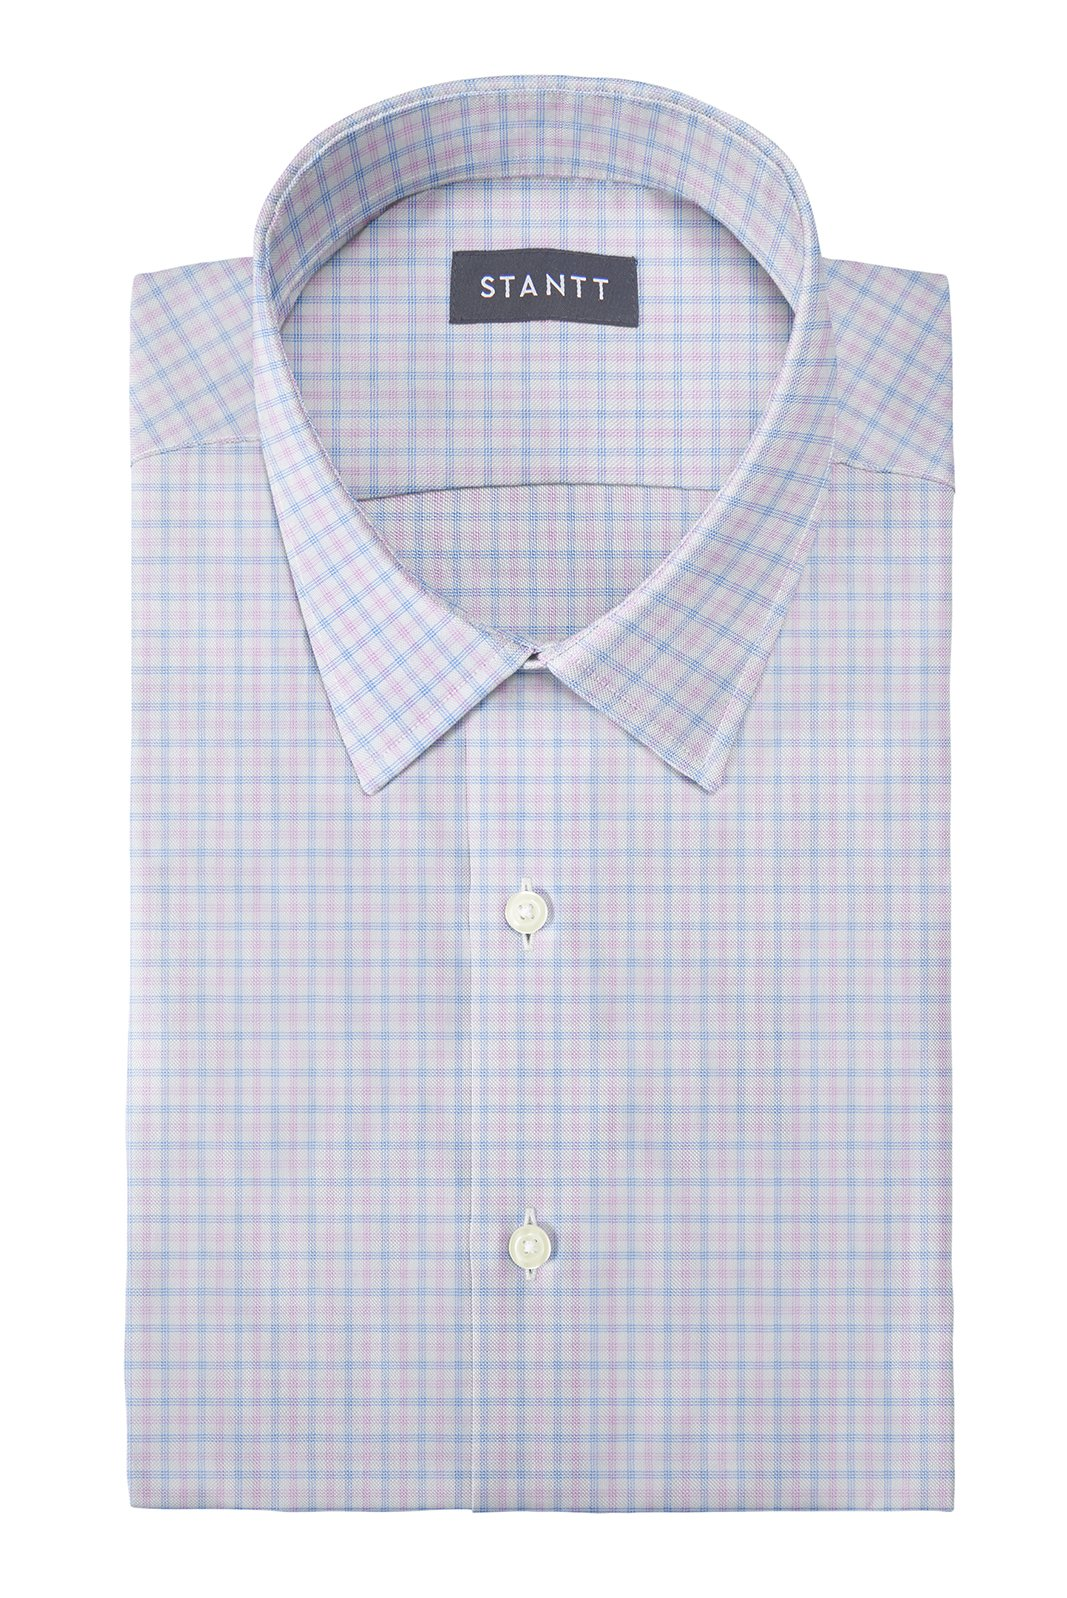 Performance Light Pink and Sky Blue Tattersall: Semi-Spread Collar, Barrel Cuff